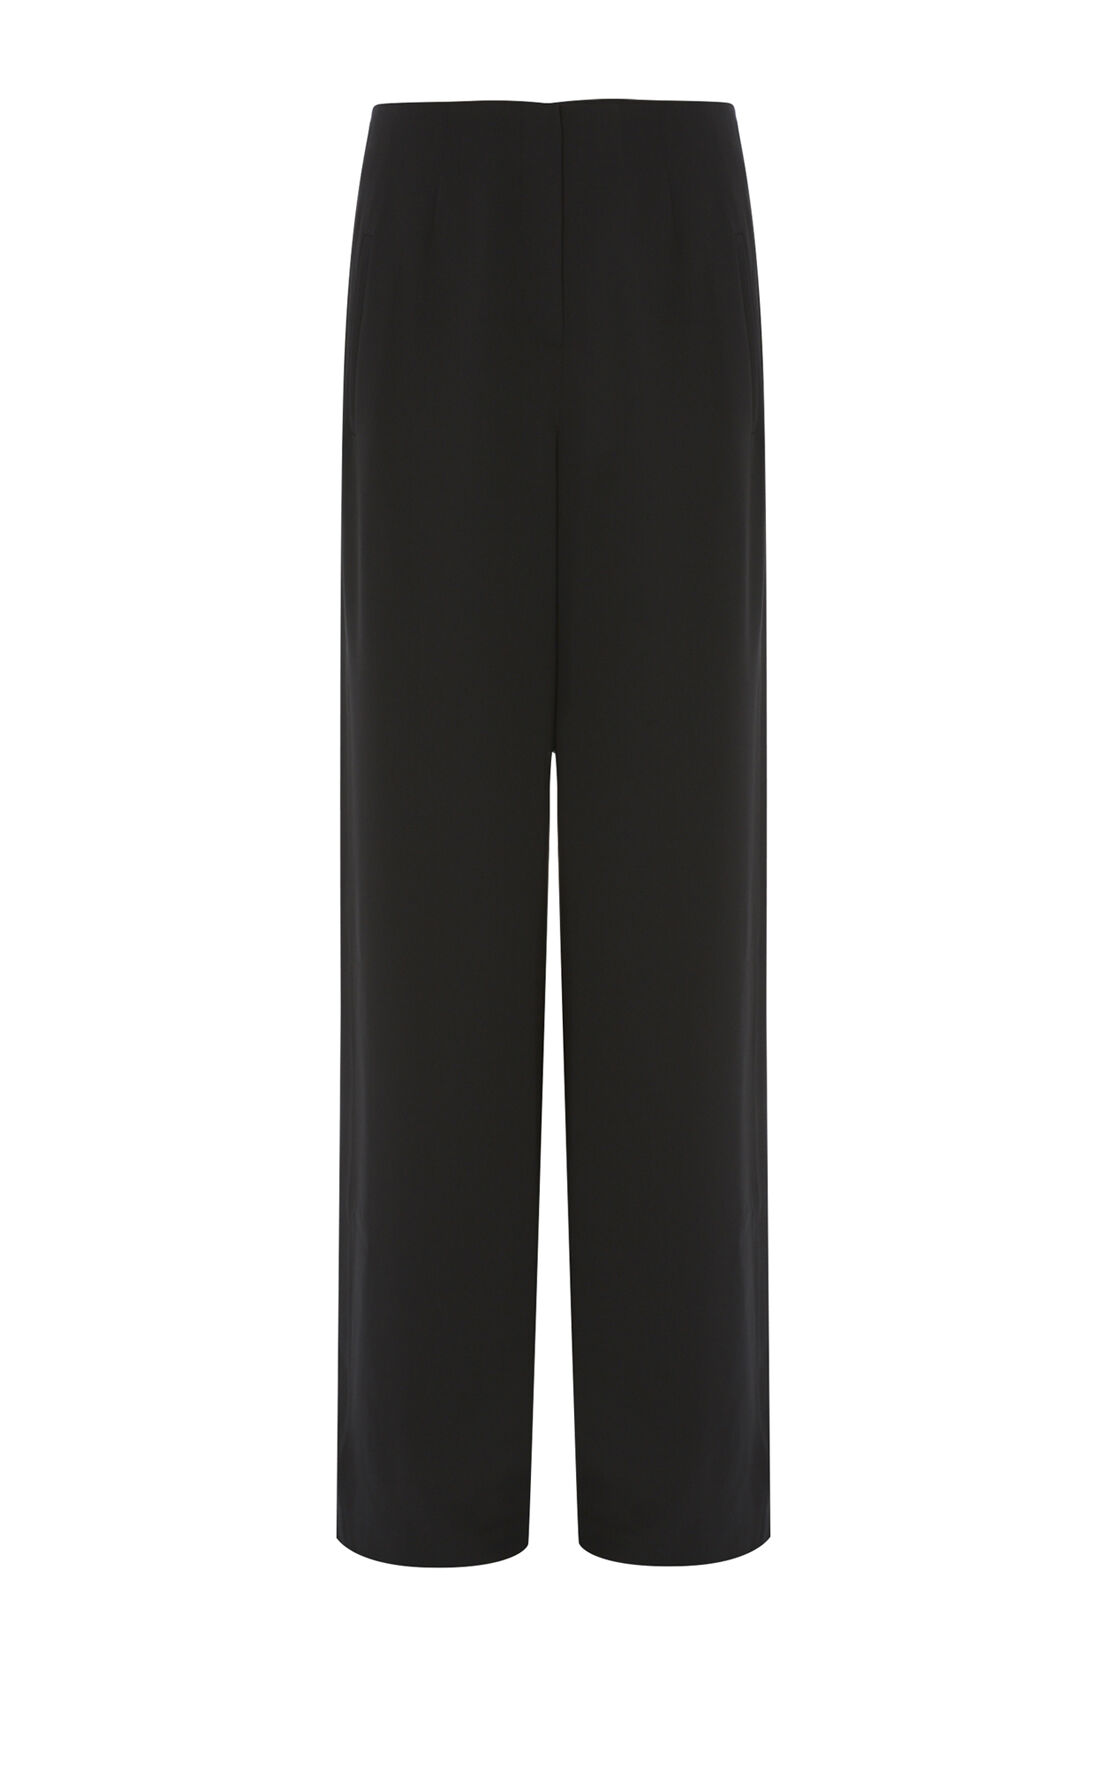 Karen Millen, WIDE-LEG TROUSERS Black 0